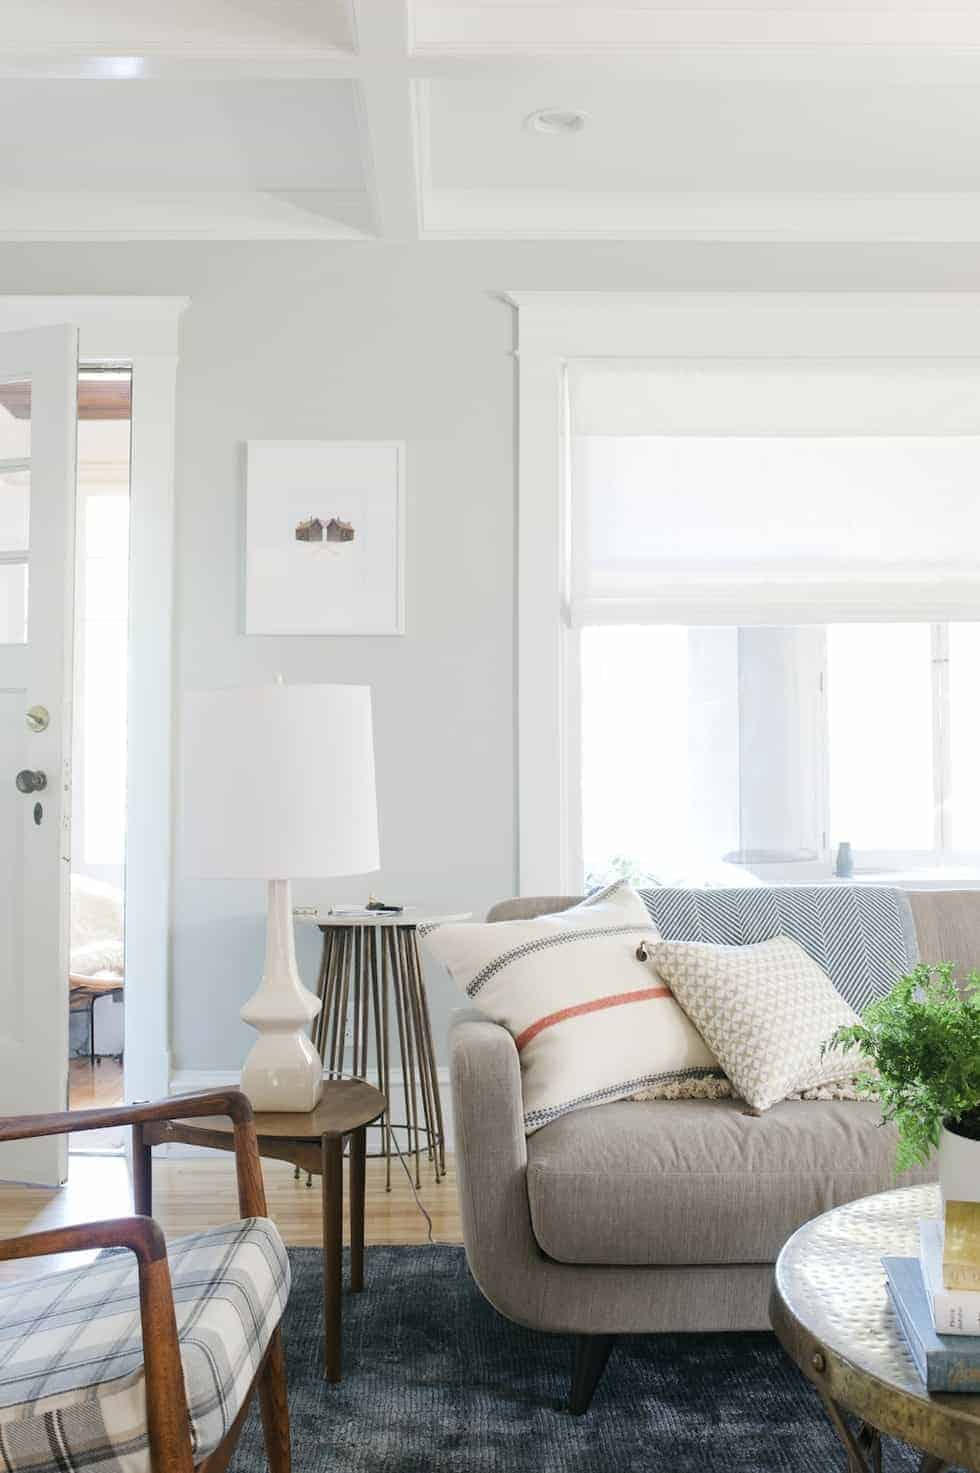 & The Best White Paint Colors For Trim - Jenna Kate at Home